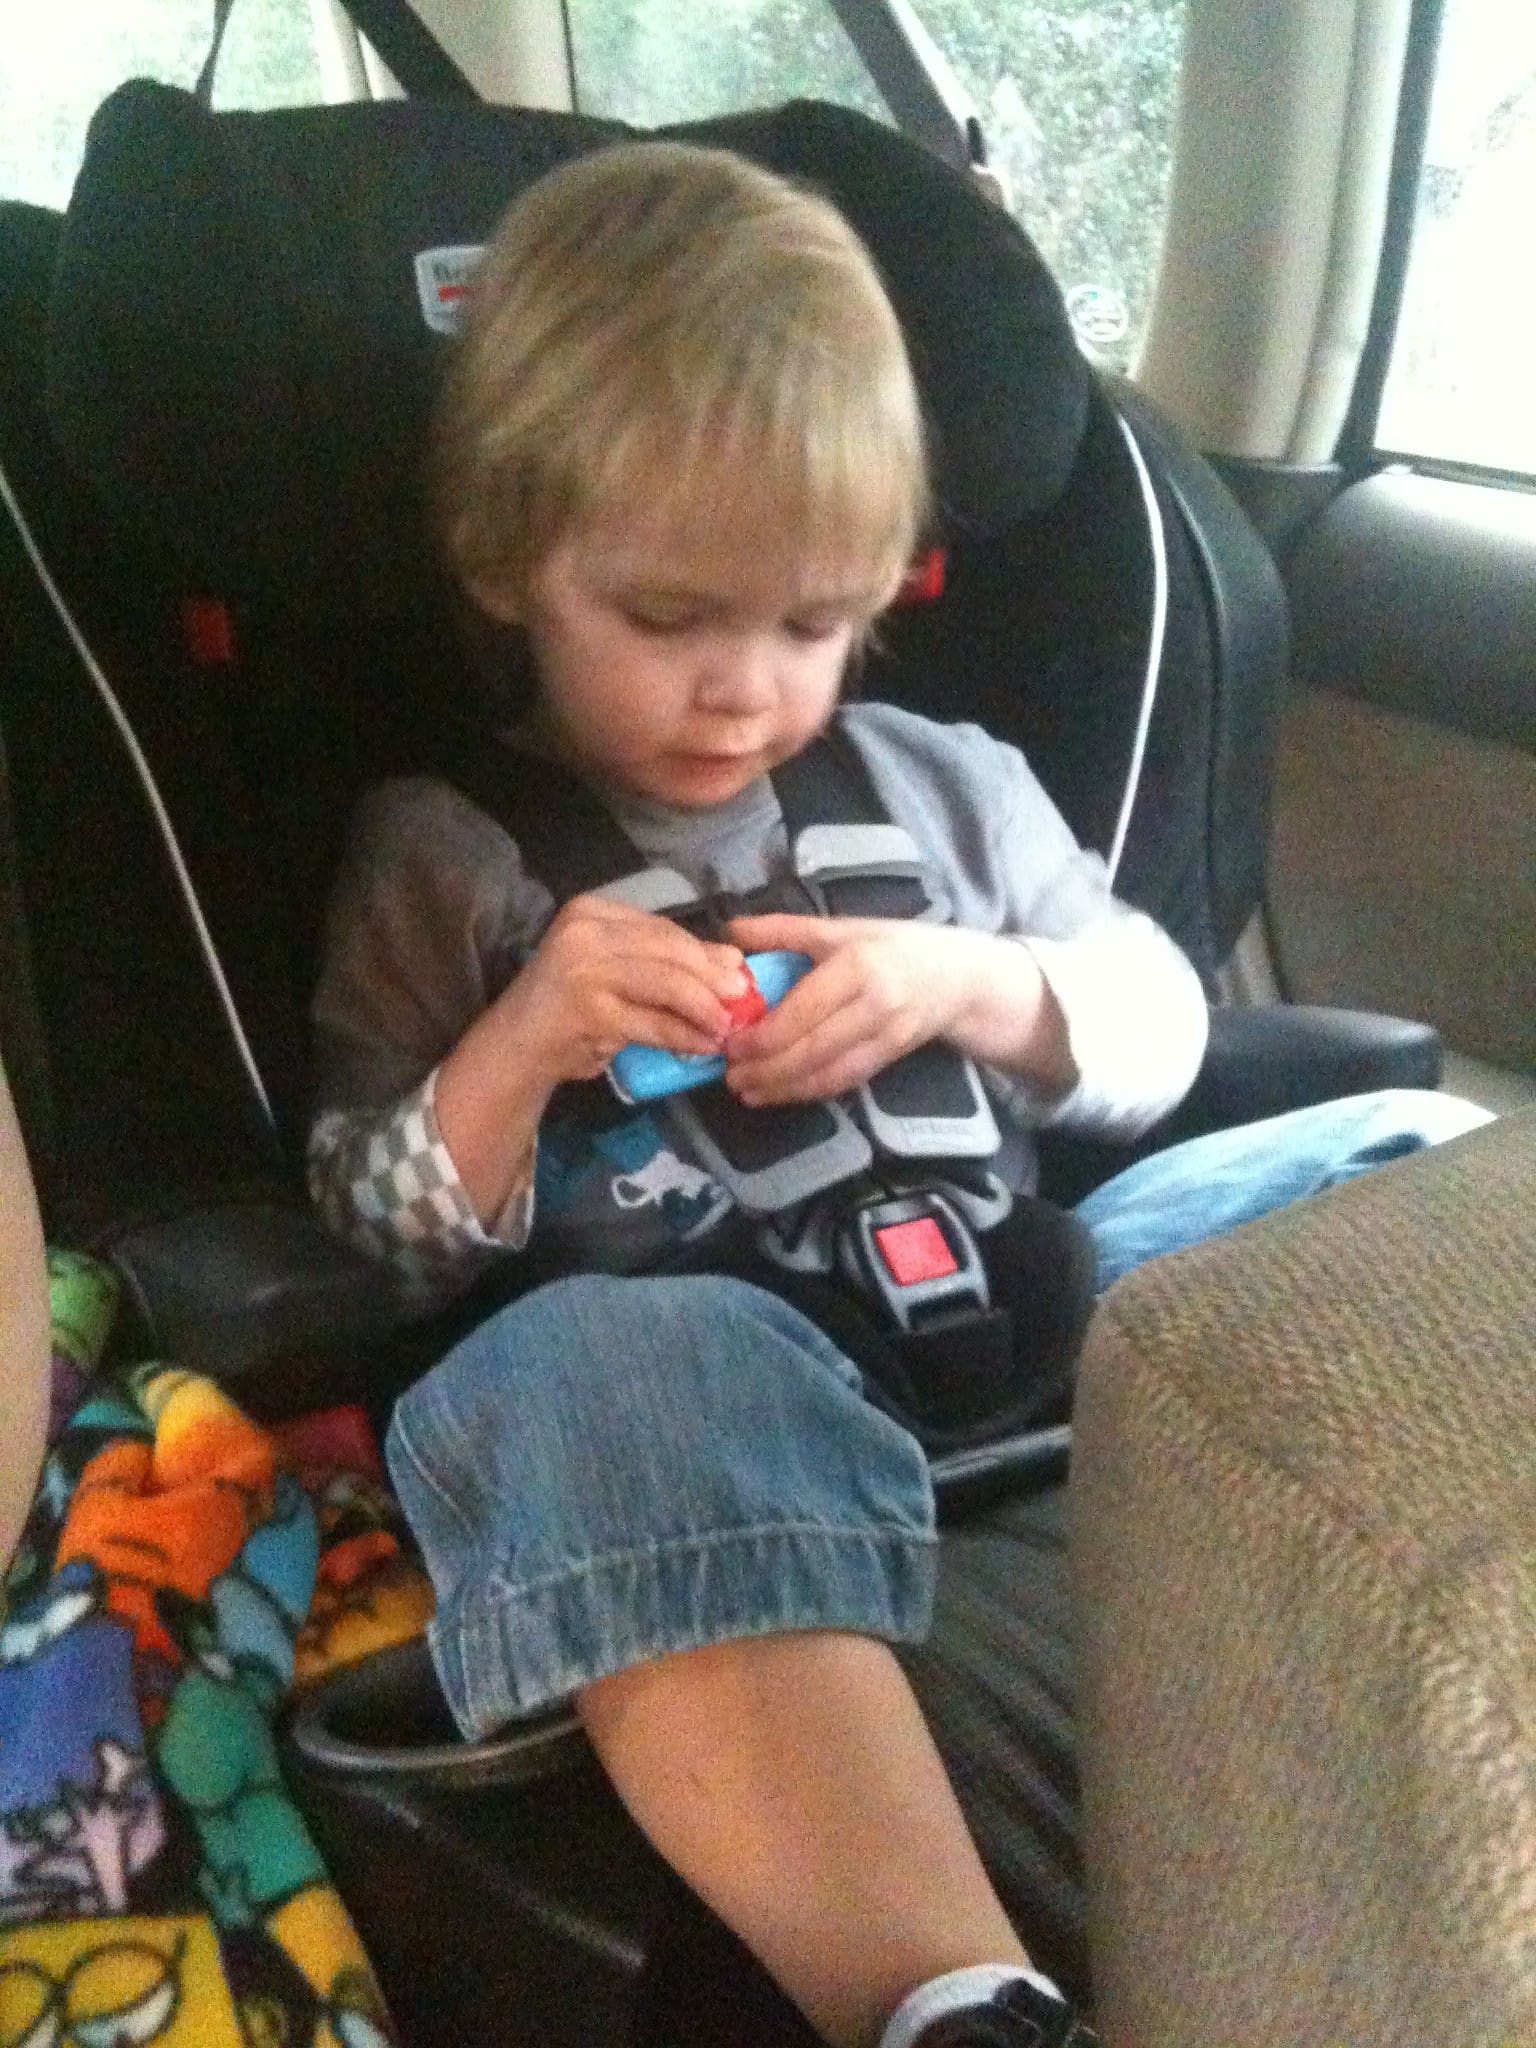 Carseat safety with @Britax